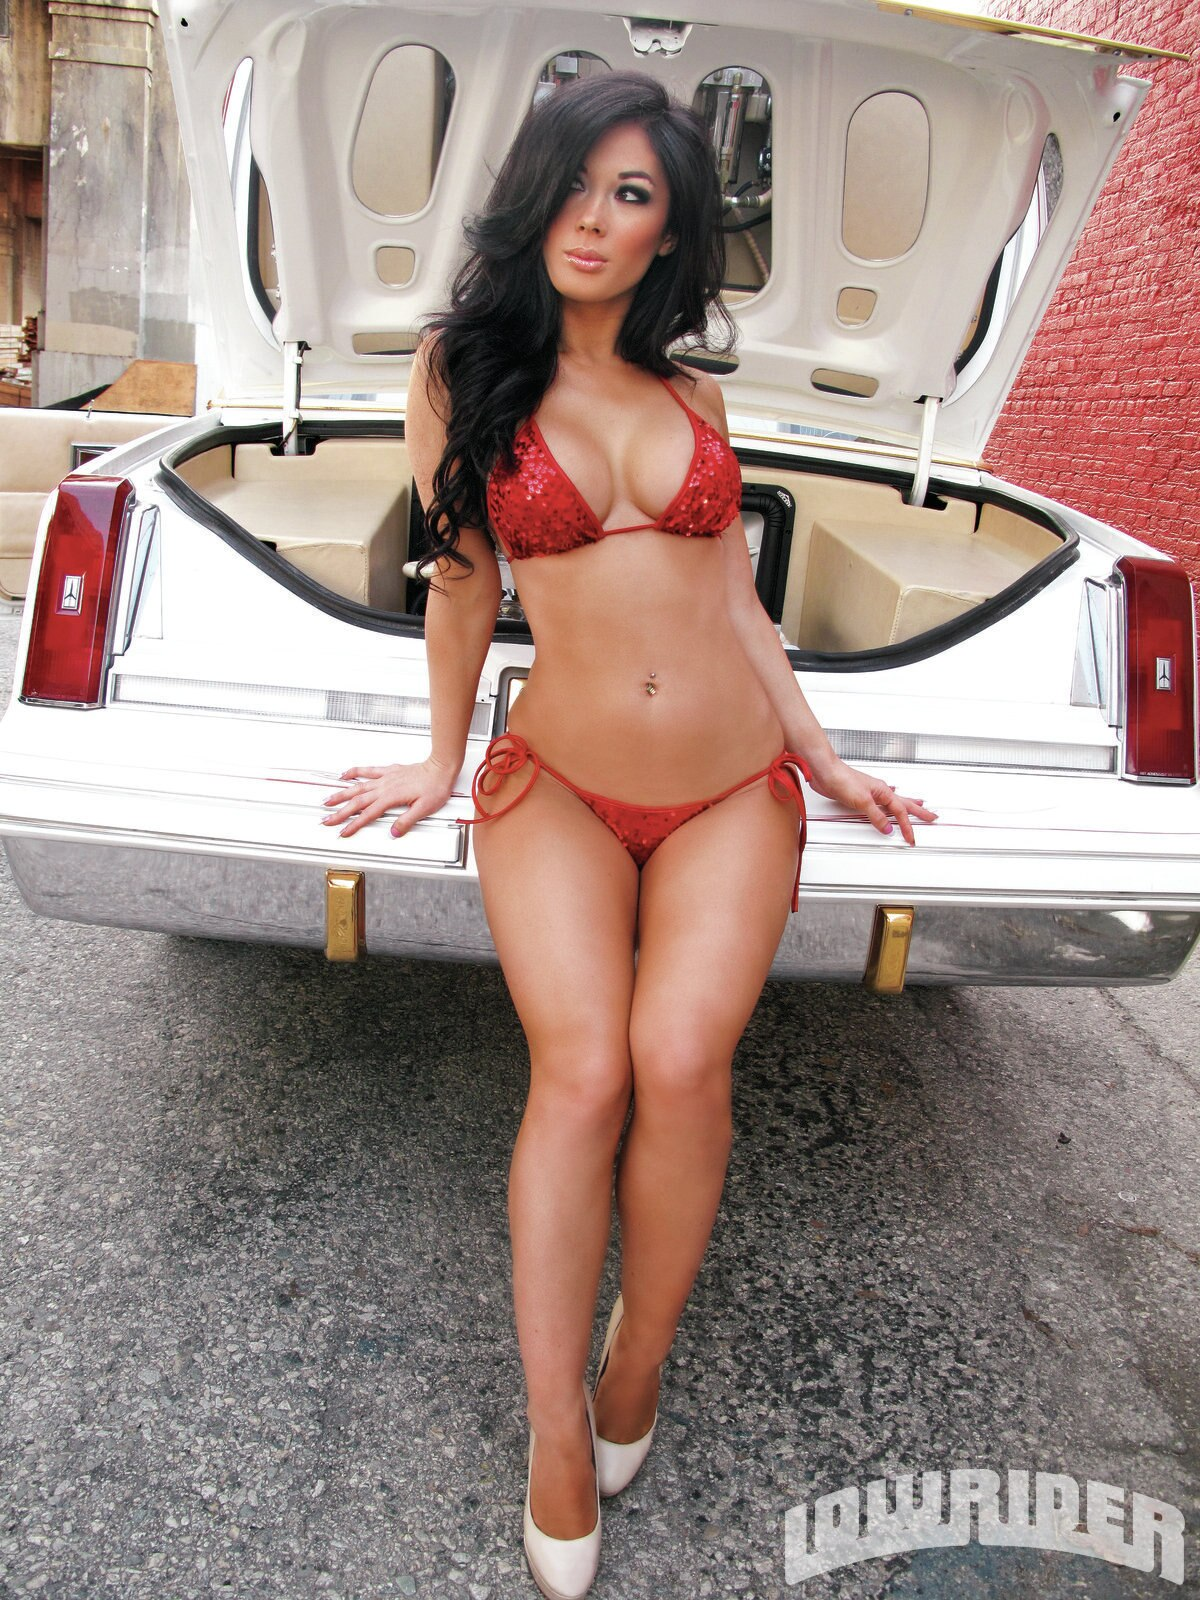 Think, that Nude lowrider model pics